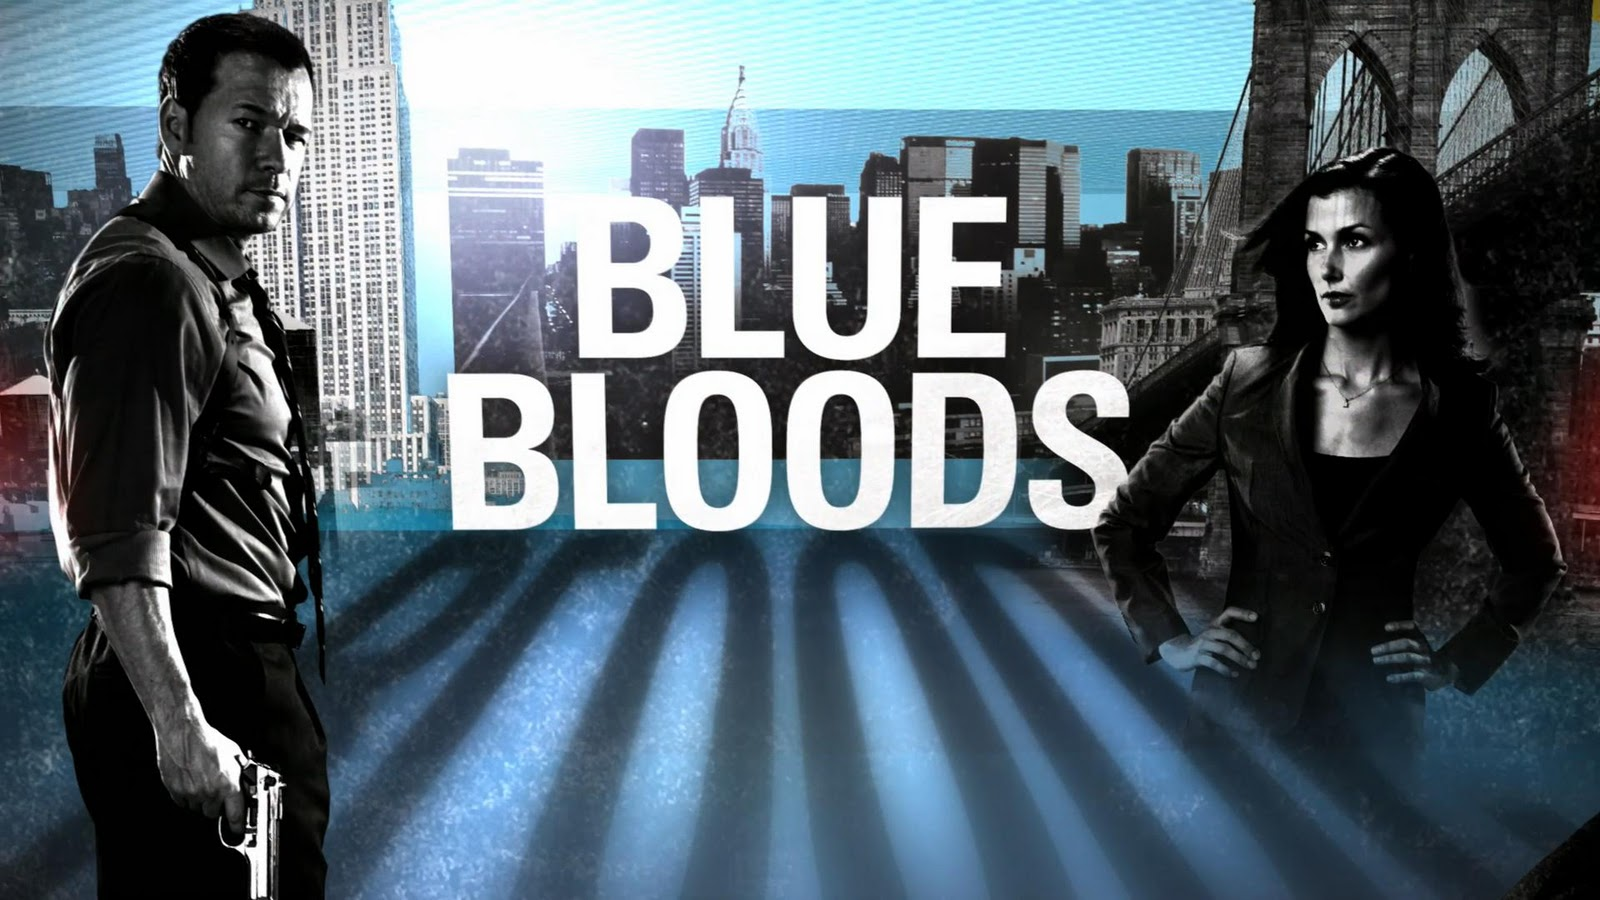 Blue+Bloods+M-Net+Series.JPG (1600×900)